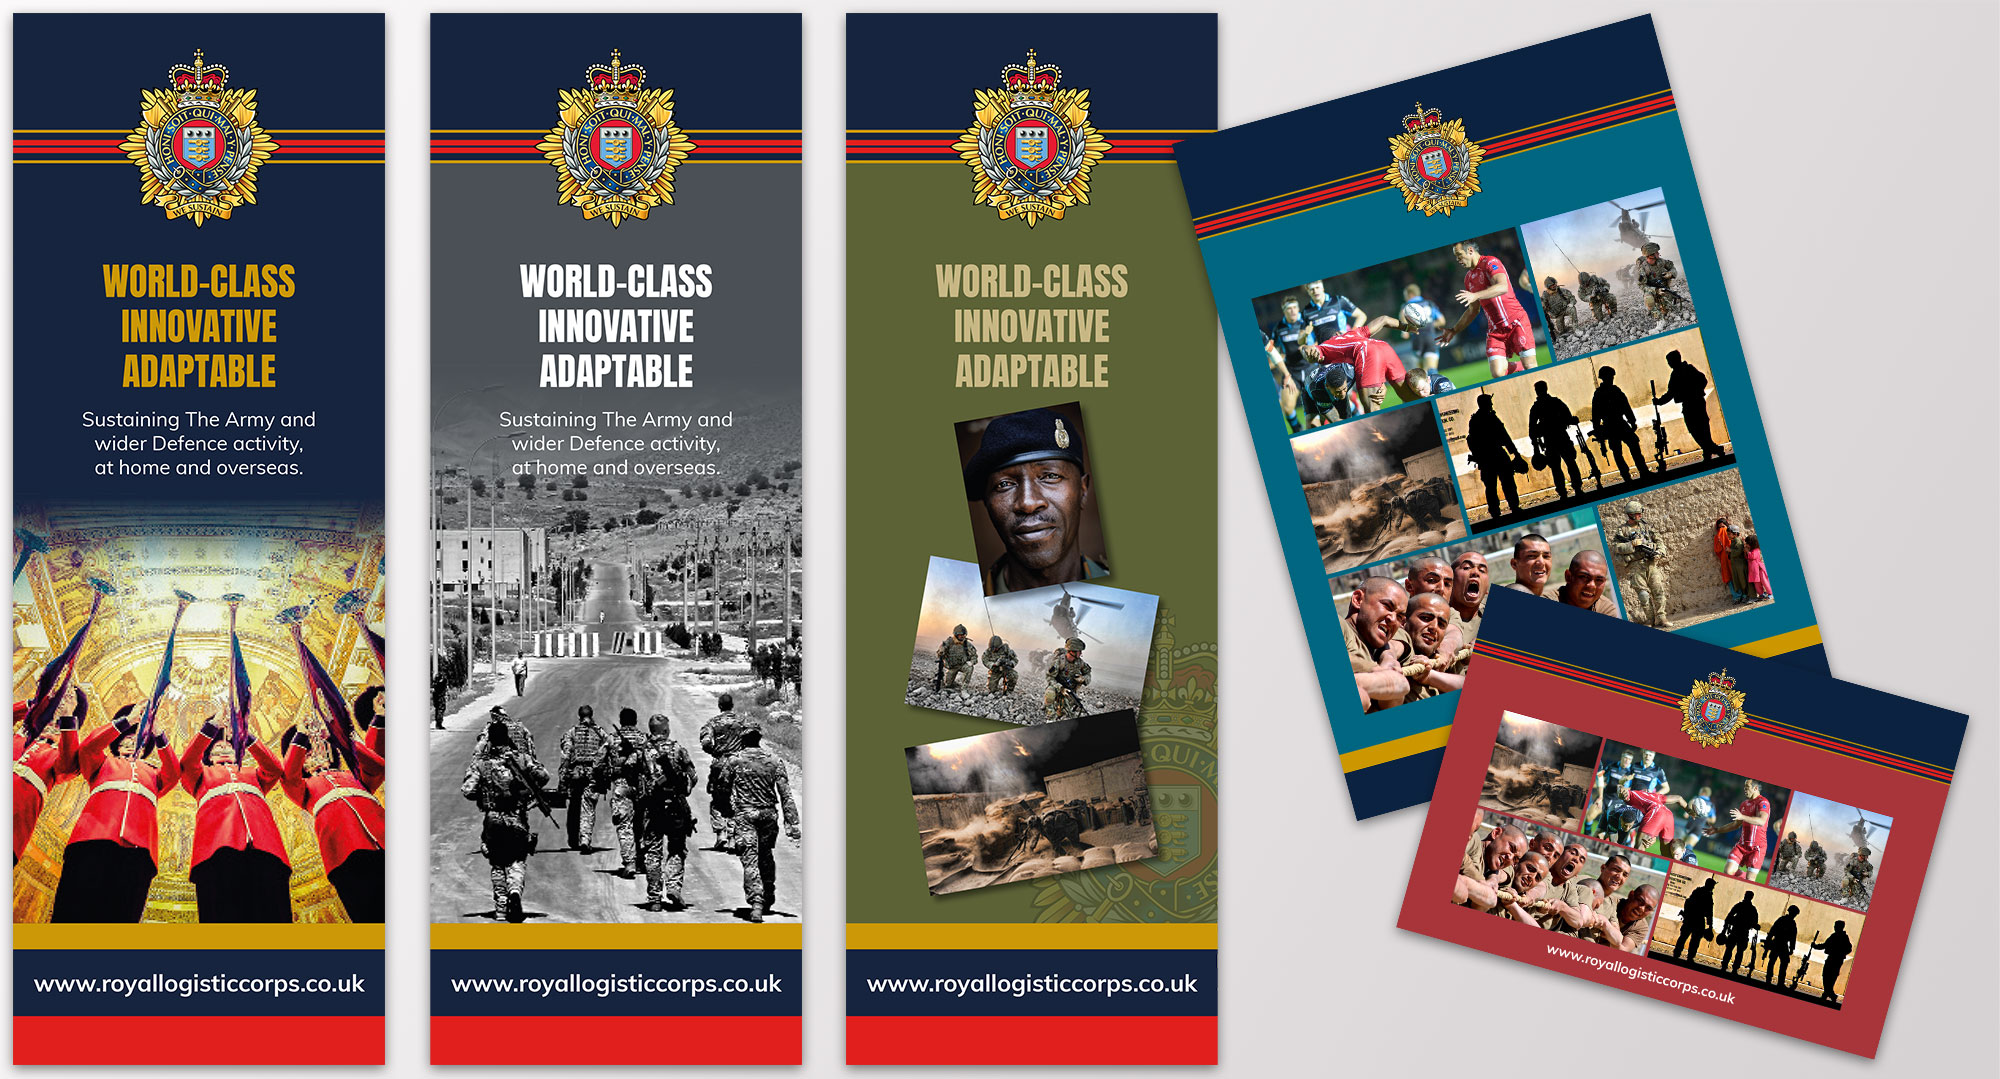 royal logistic corps banners